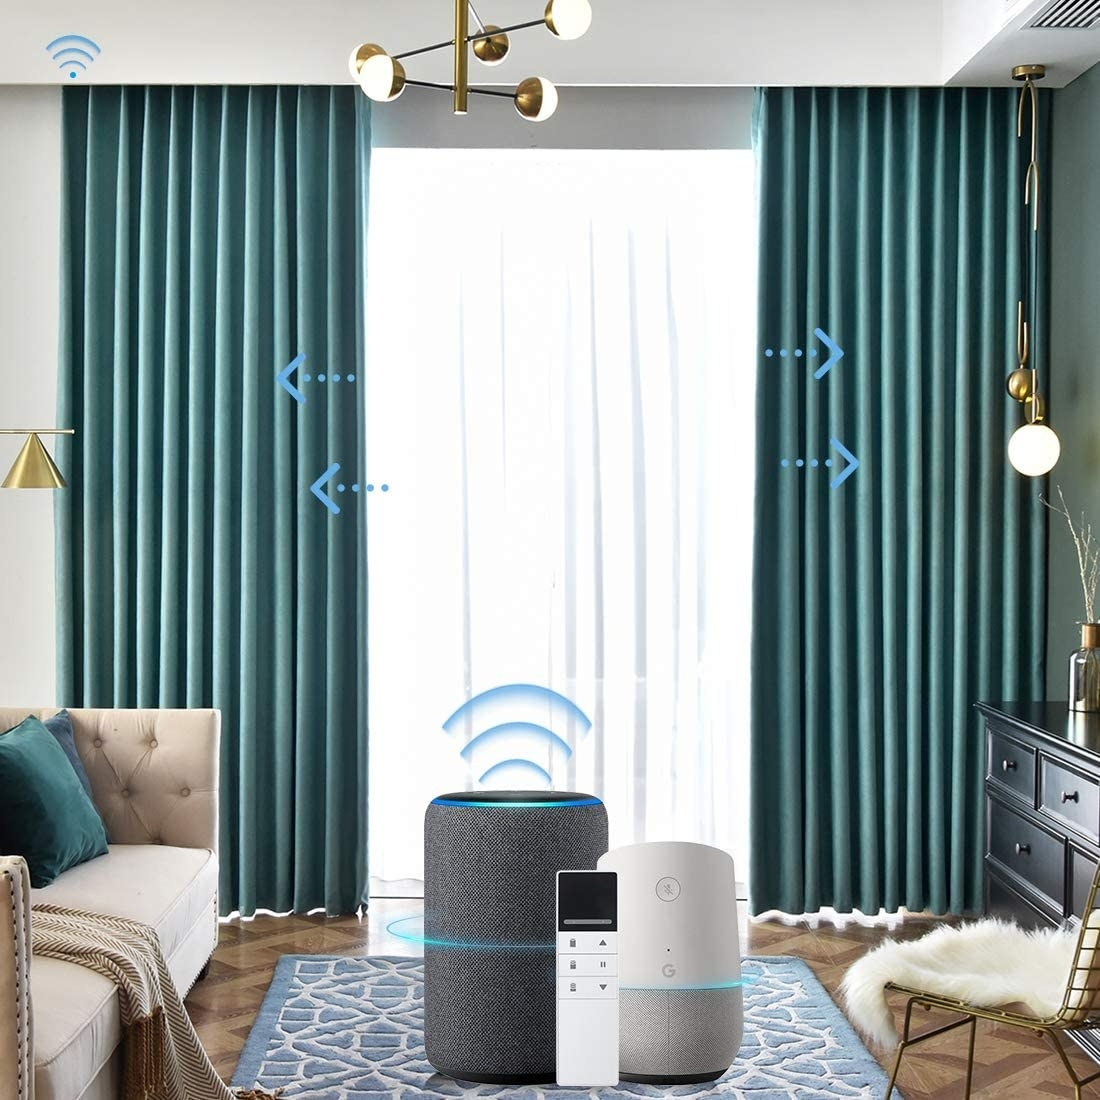 Curtains on either side of a sliding door with arrows pointing out, showing that they move without assistance. There is a remote, Amazon Alexa, and Google Home in the image to show what the curtains work with.